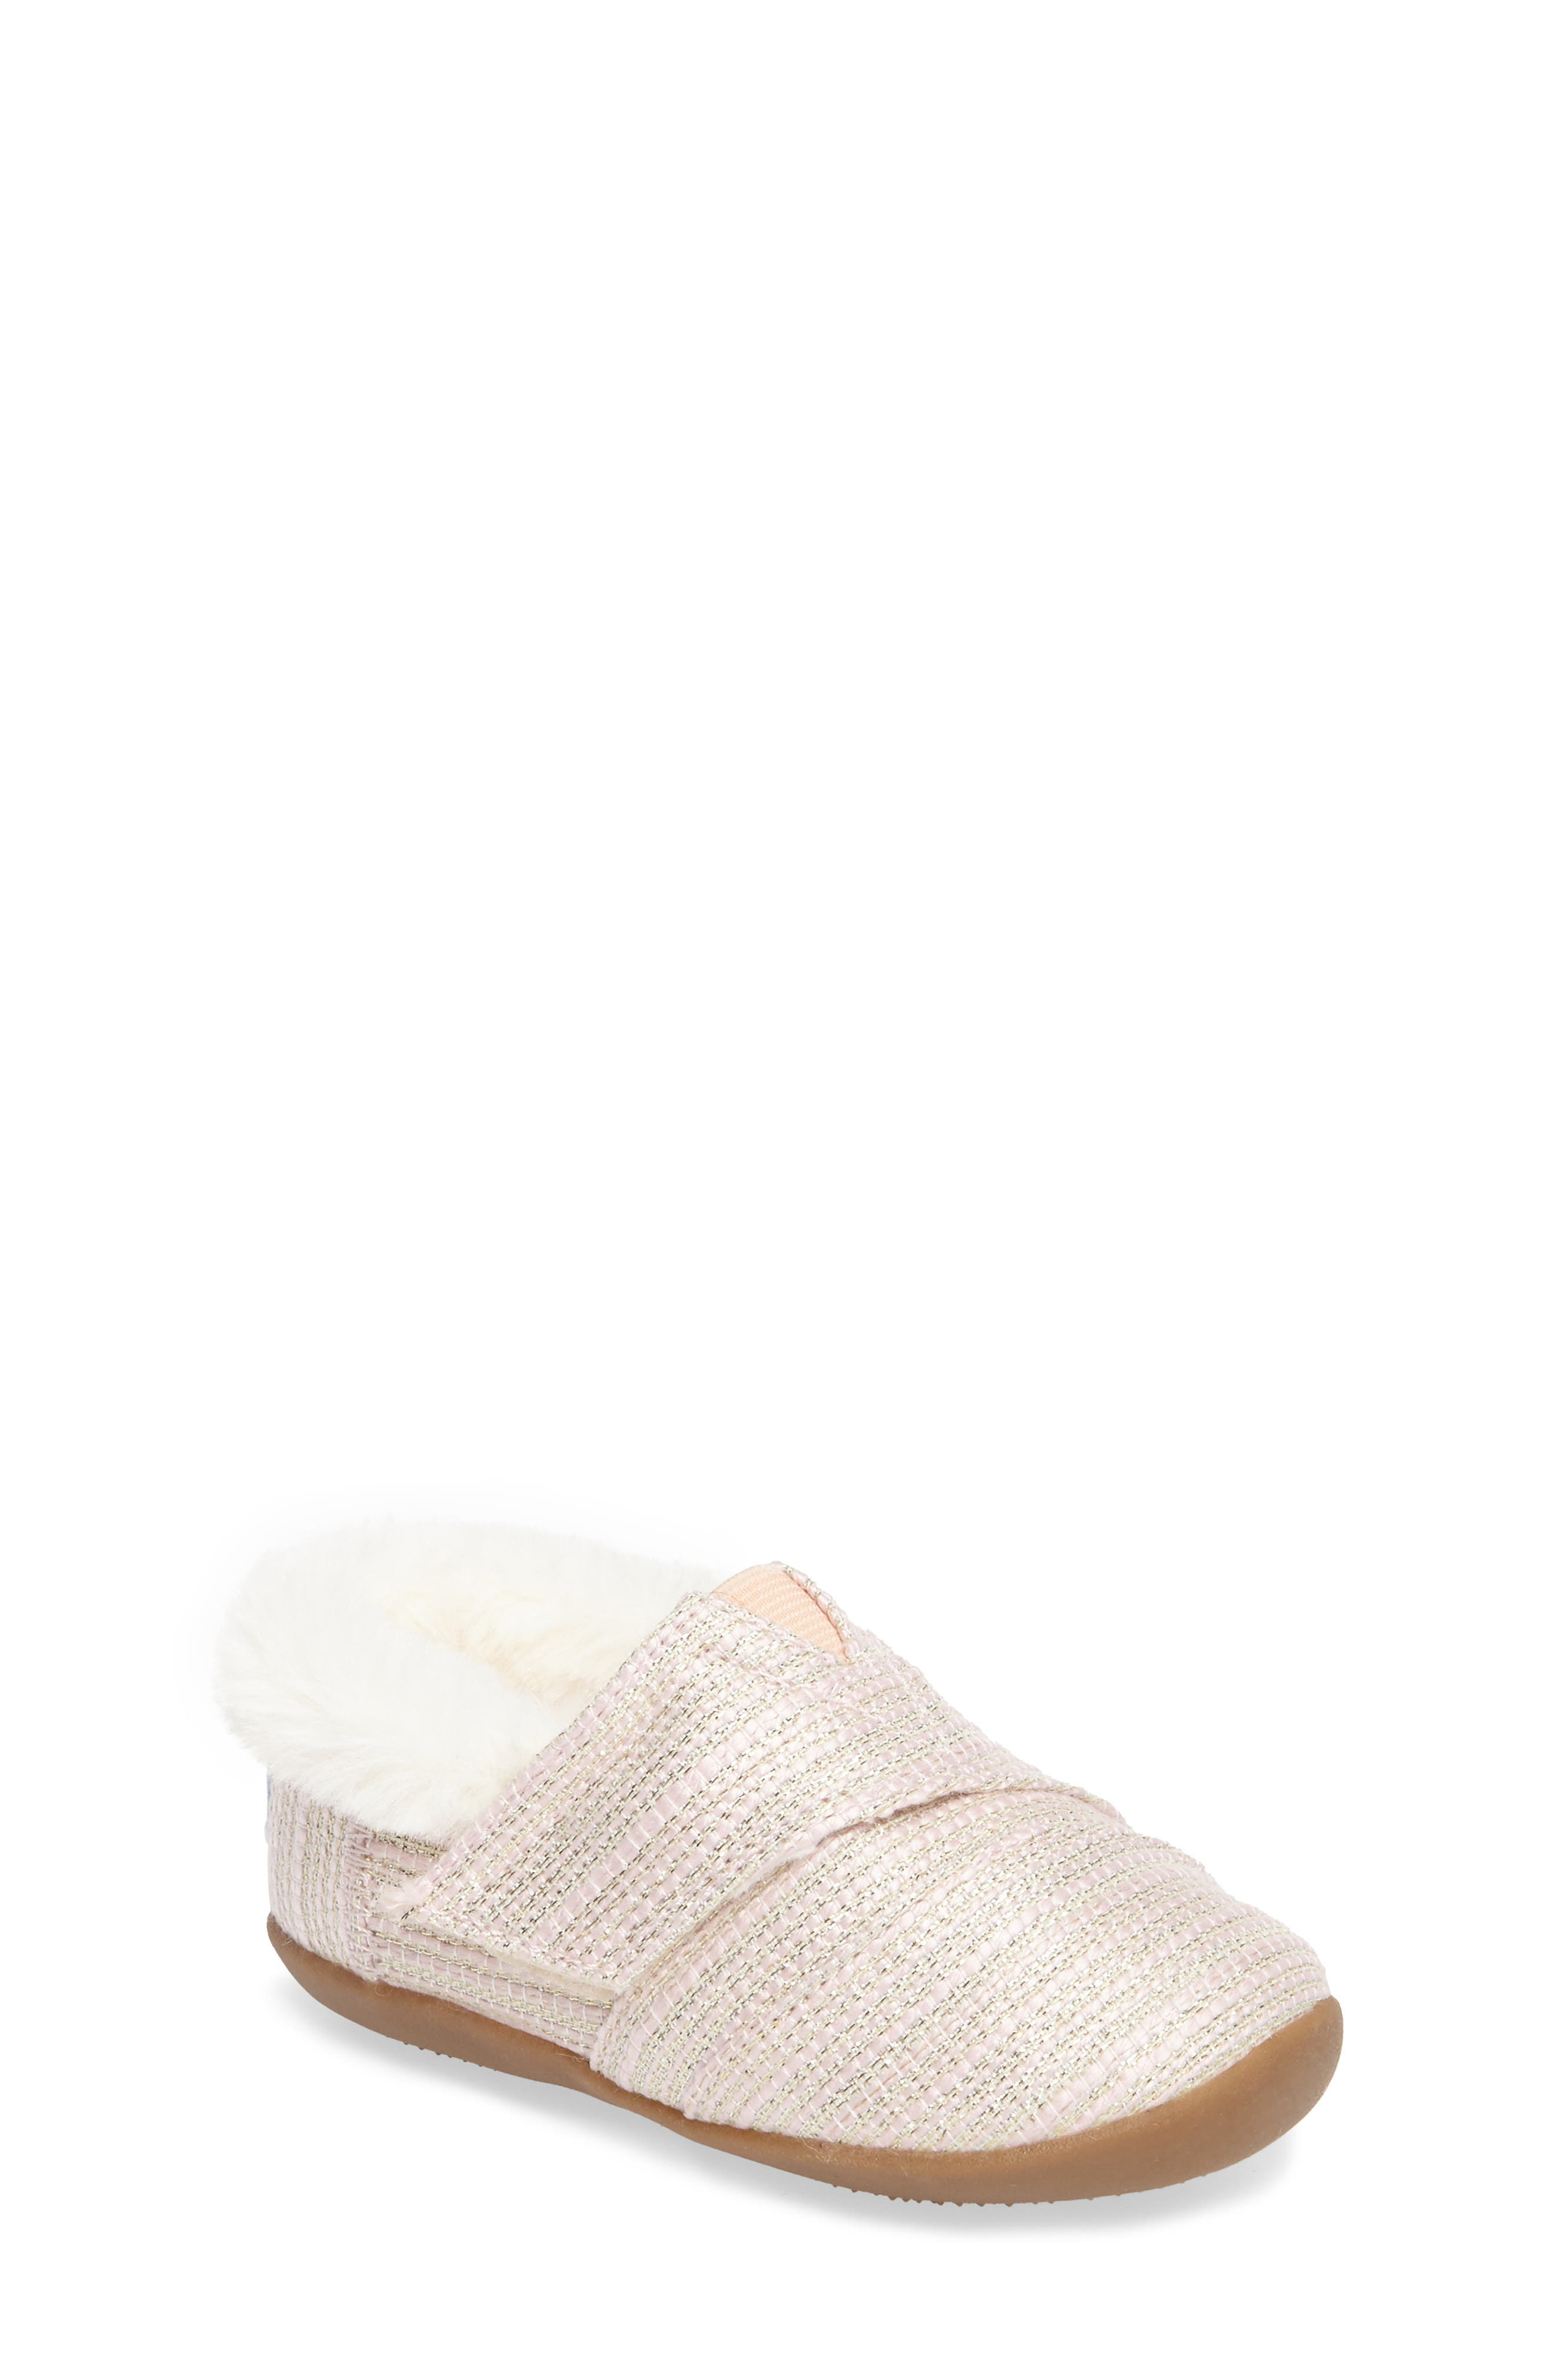 Main Image - TOMS Tiny Faux Fur Metallic Slipper (Baby, Walker & Toddler)